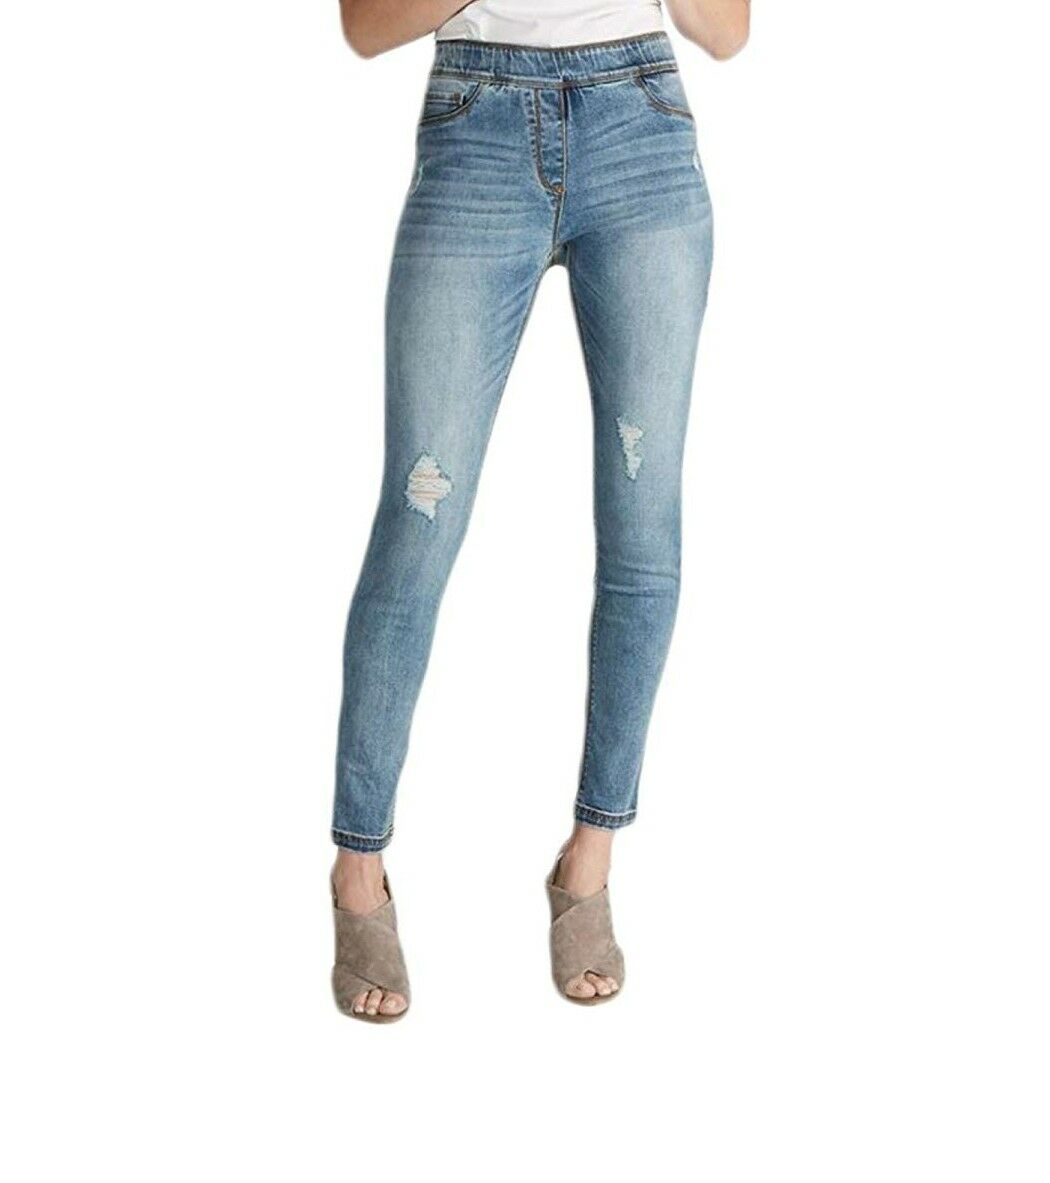 Coco and Carmen OMG Skinny Jeans in Light Distressed Denim